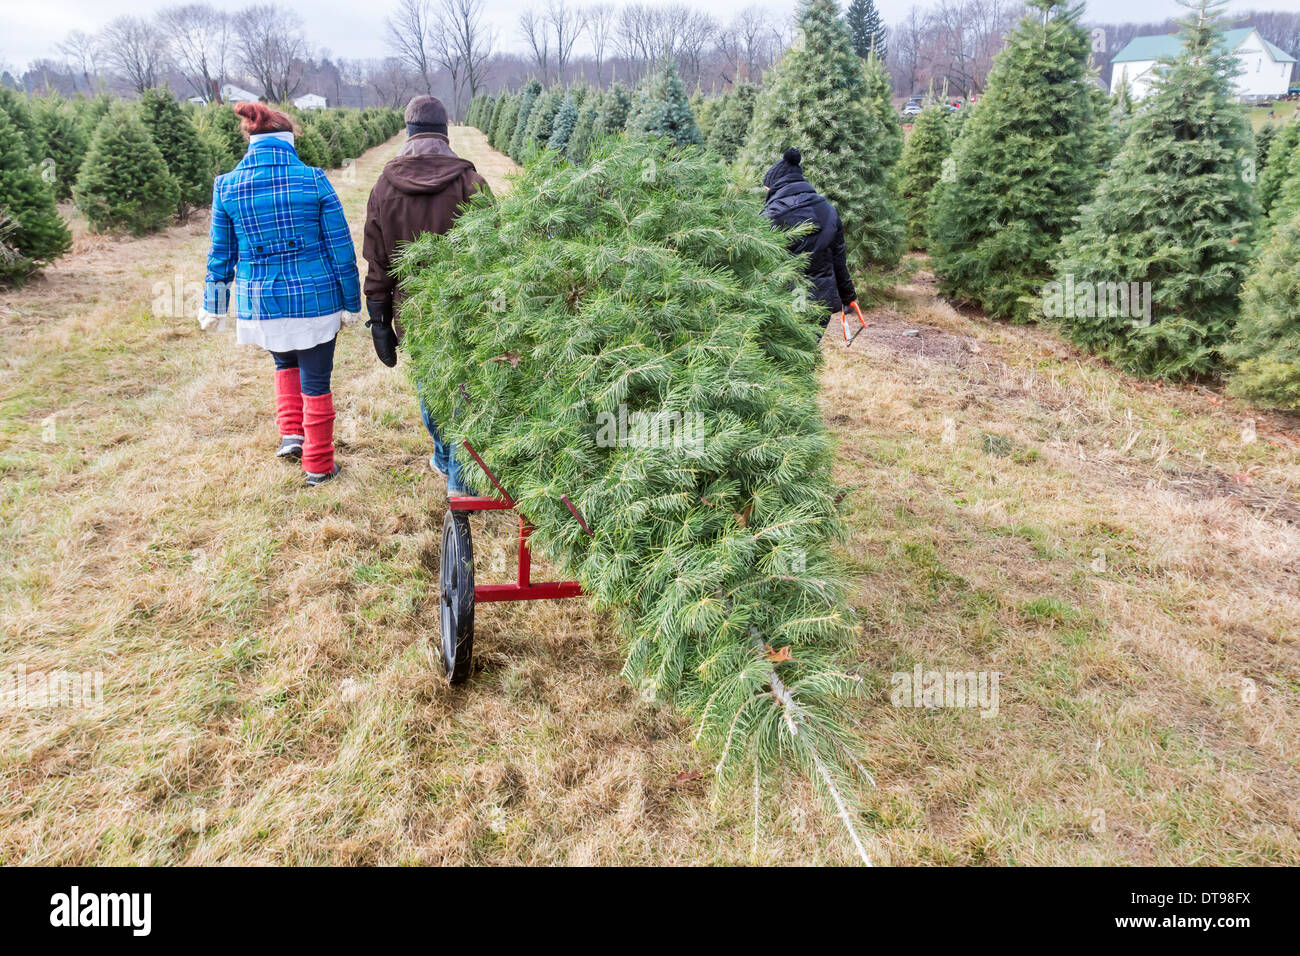 Cut Down Christmas Tree Near Me.A Christmas Tree Being Pulled By People Who Cut Down A